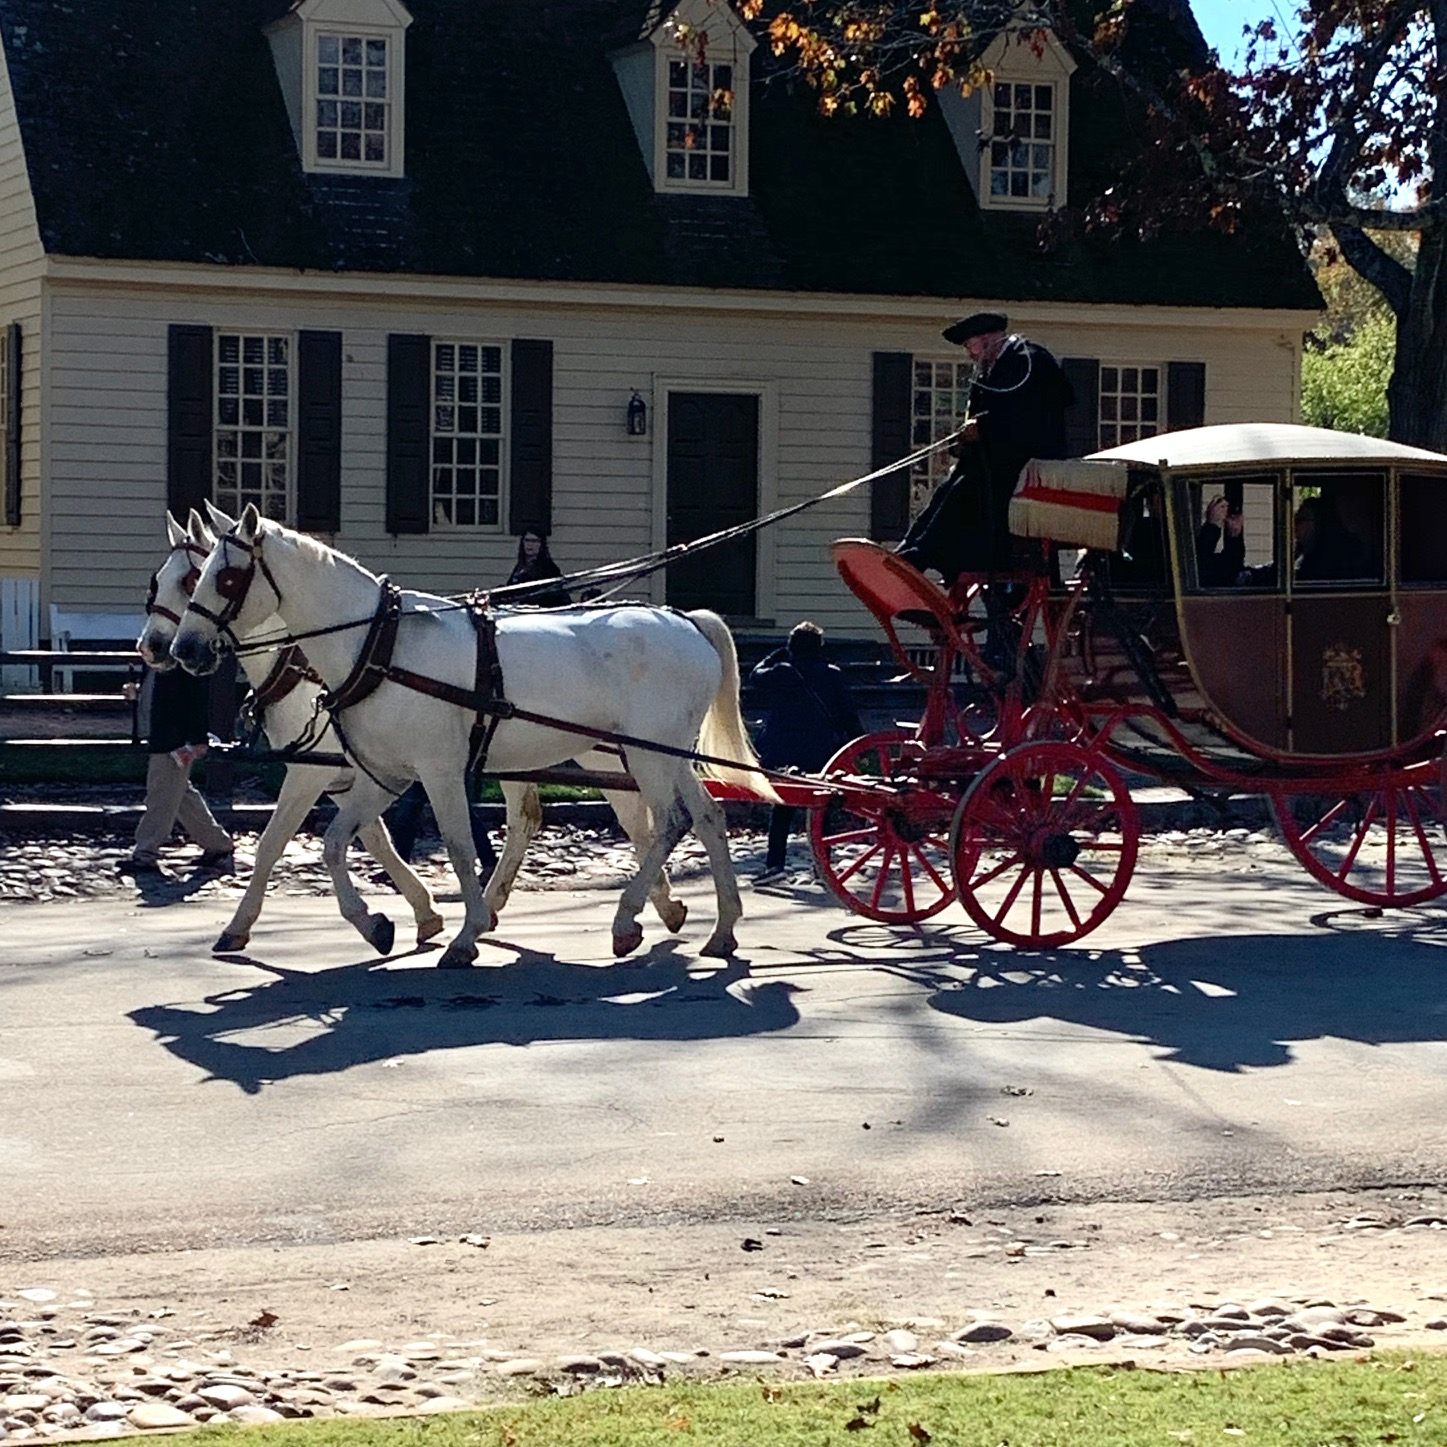 Two white horses pull a red covered carriage down the street in Colonial Williamsburg.